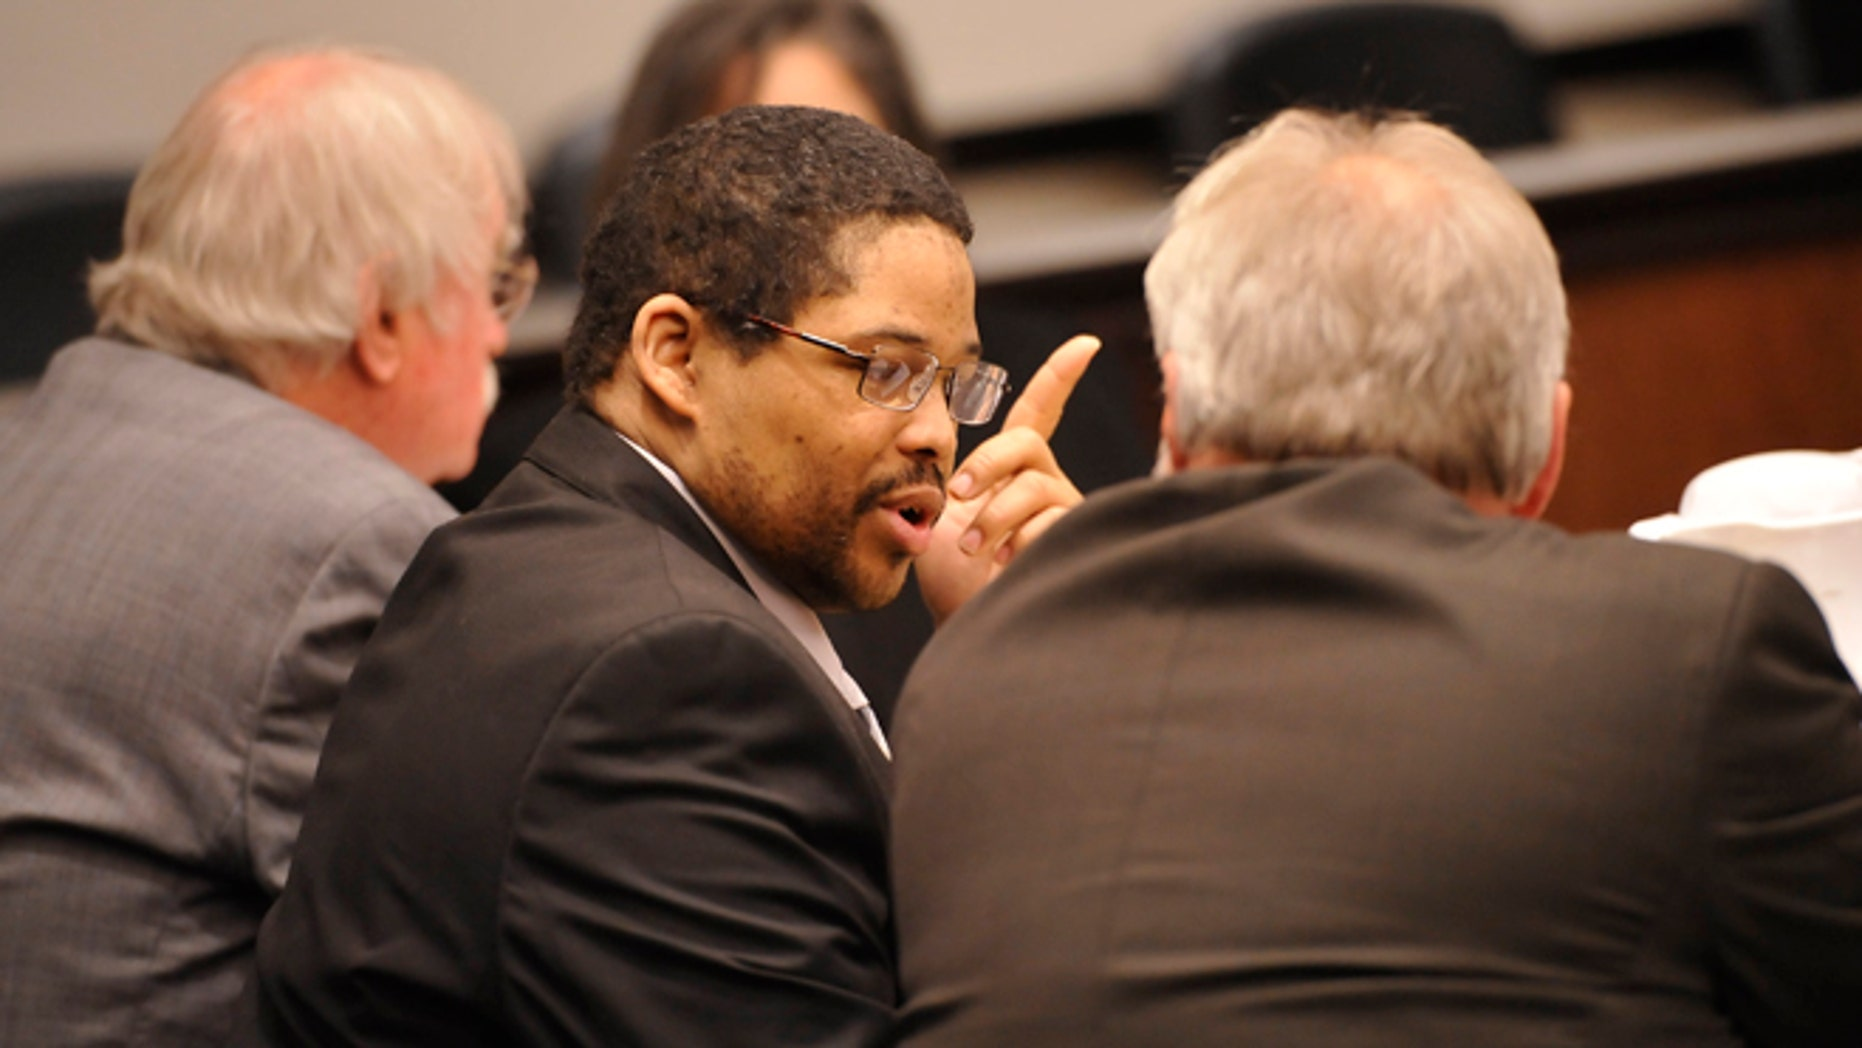 April 22, 2013: In this file photo, Bartholomew Granger, center, is flanked by attorneys James Makin, right, and Sonny Cribbs before the start of his trial in Galveston, Texas.